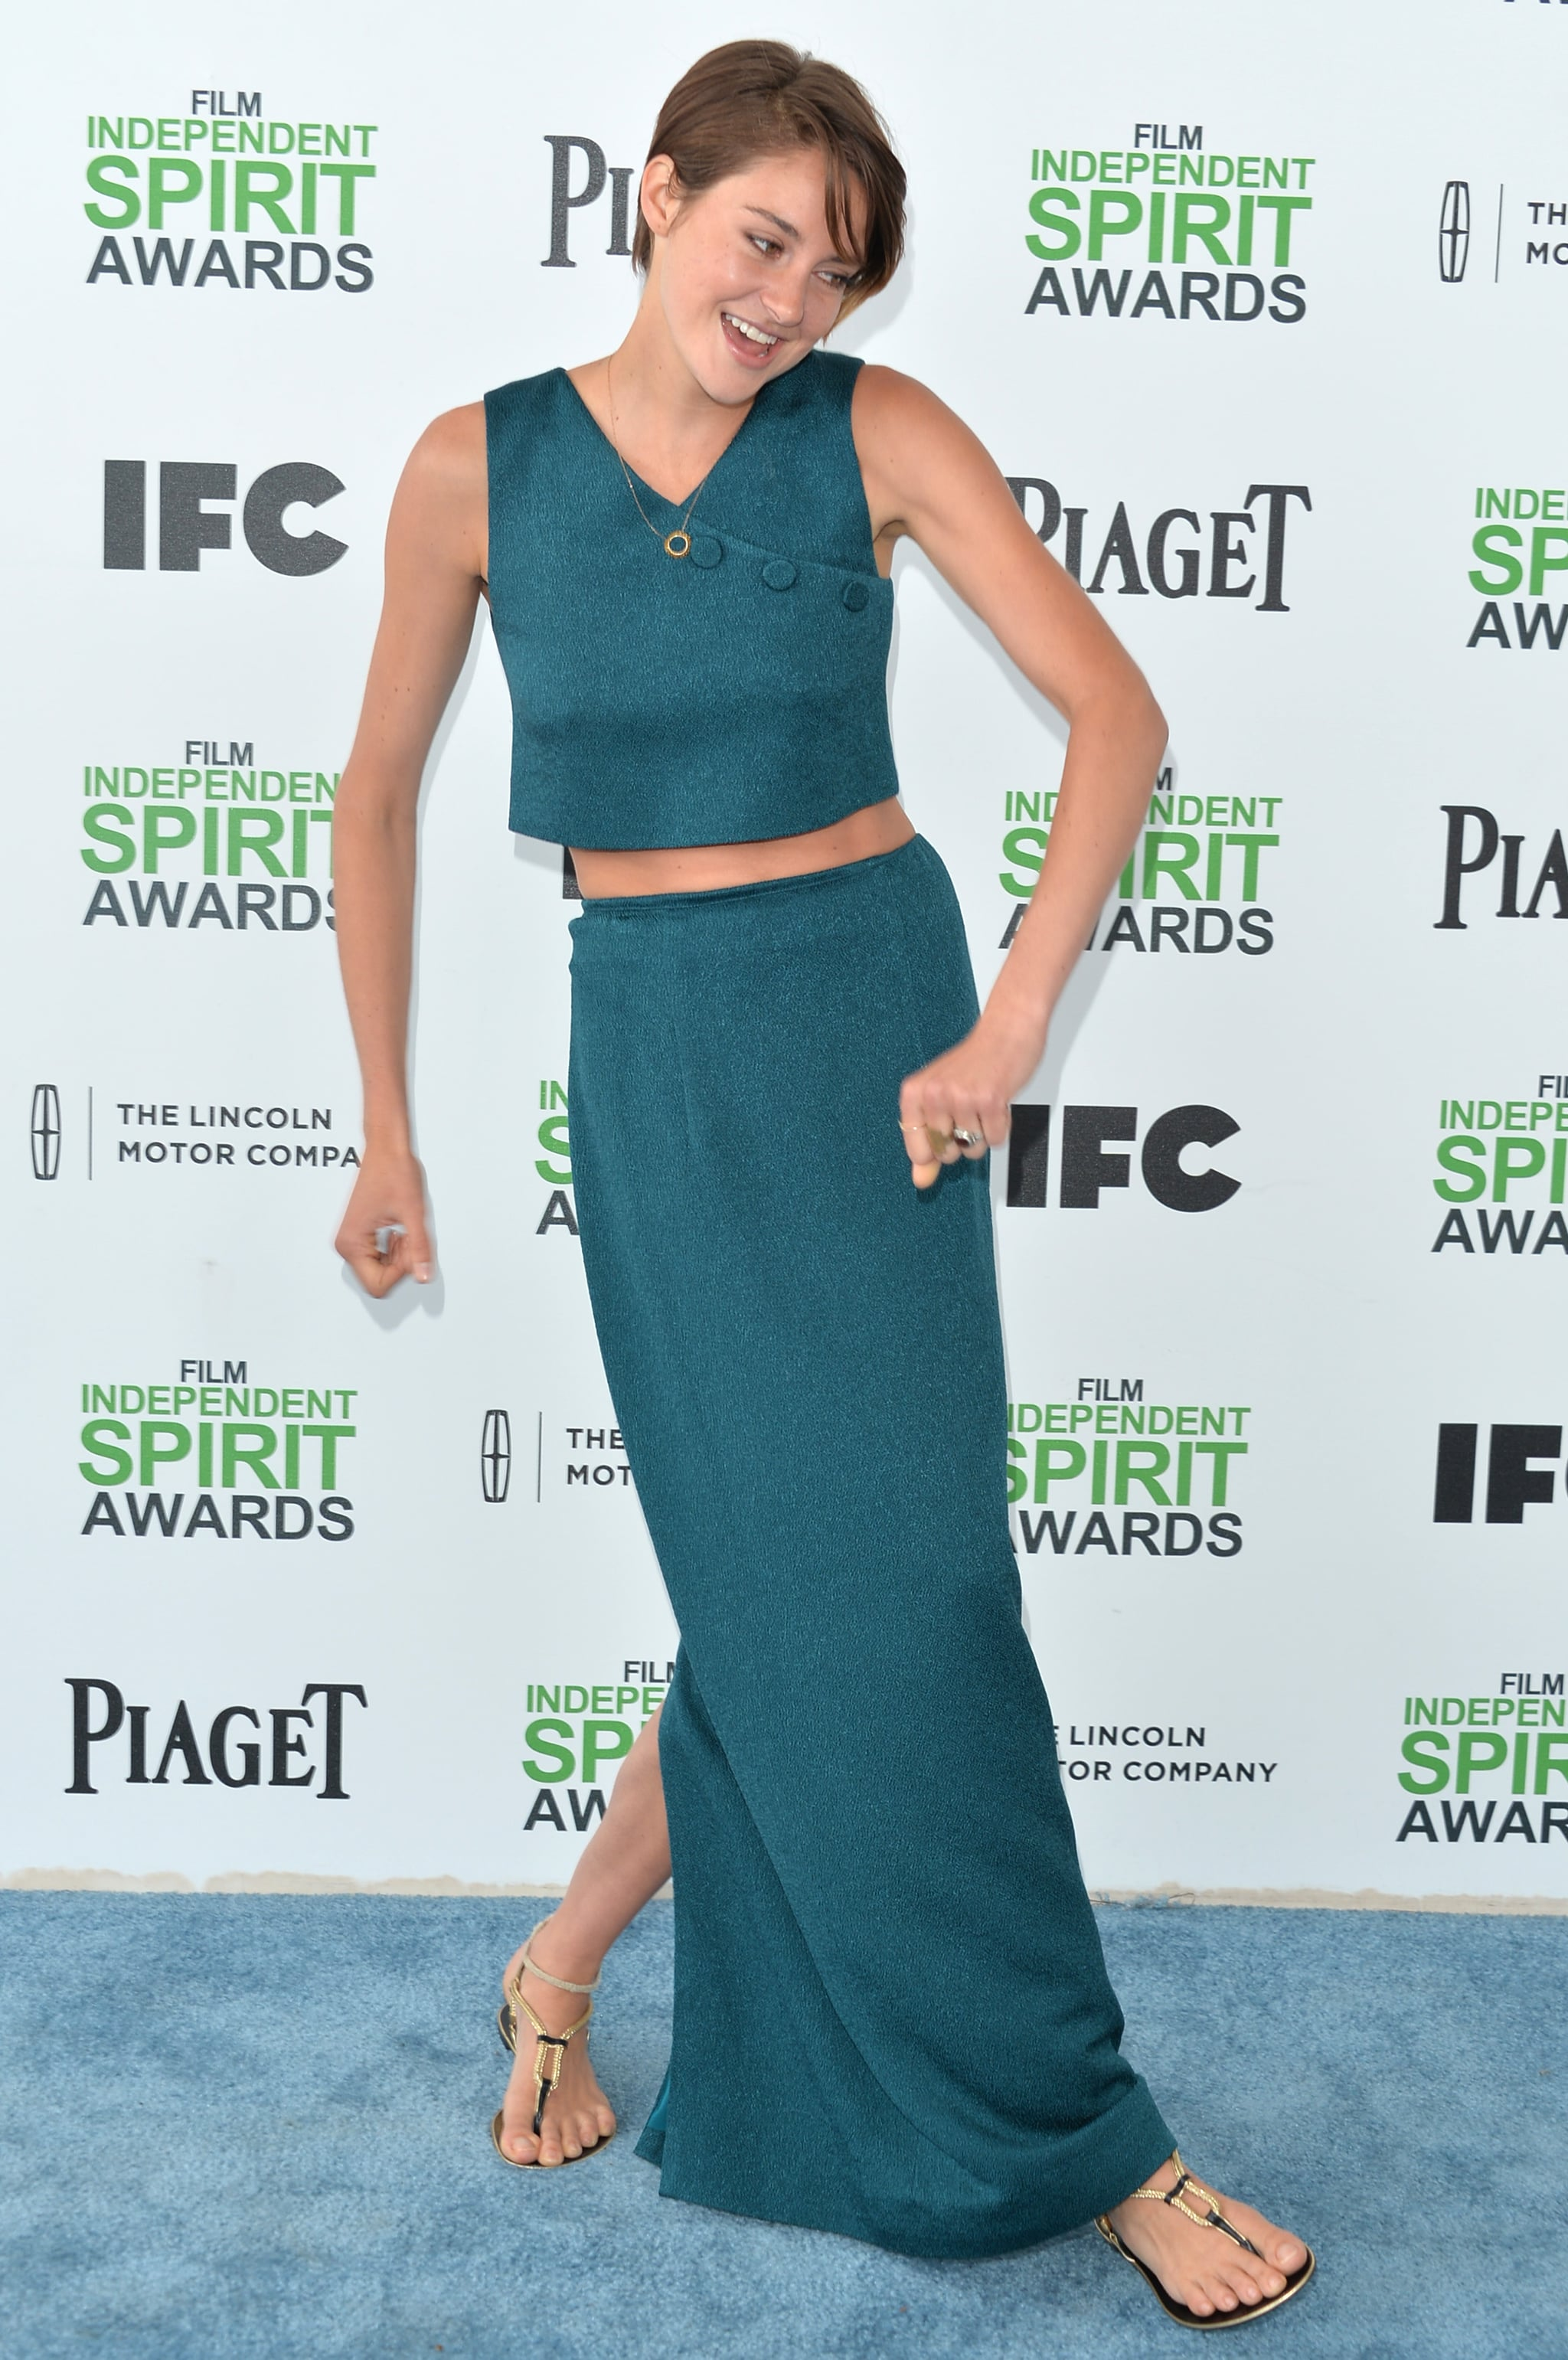 Shailene Woodley at the Spirit Awards